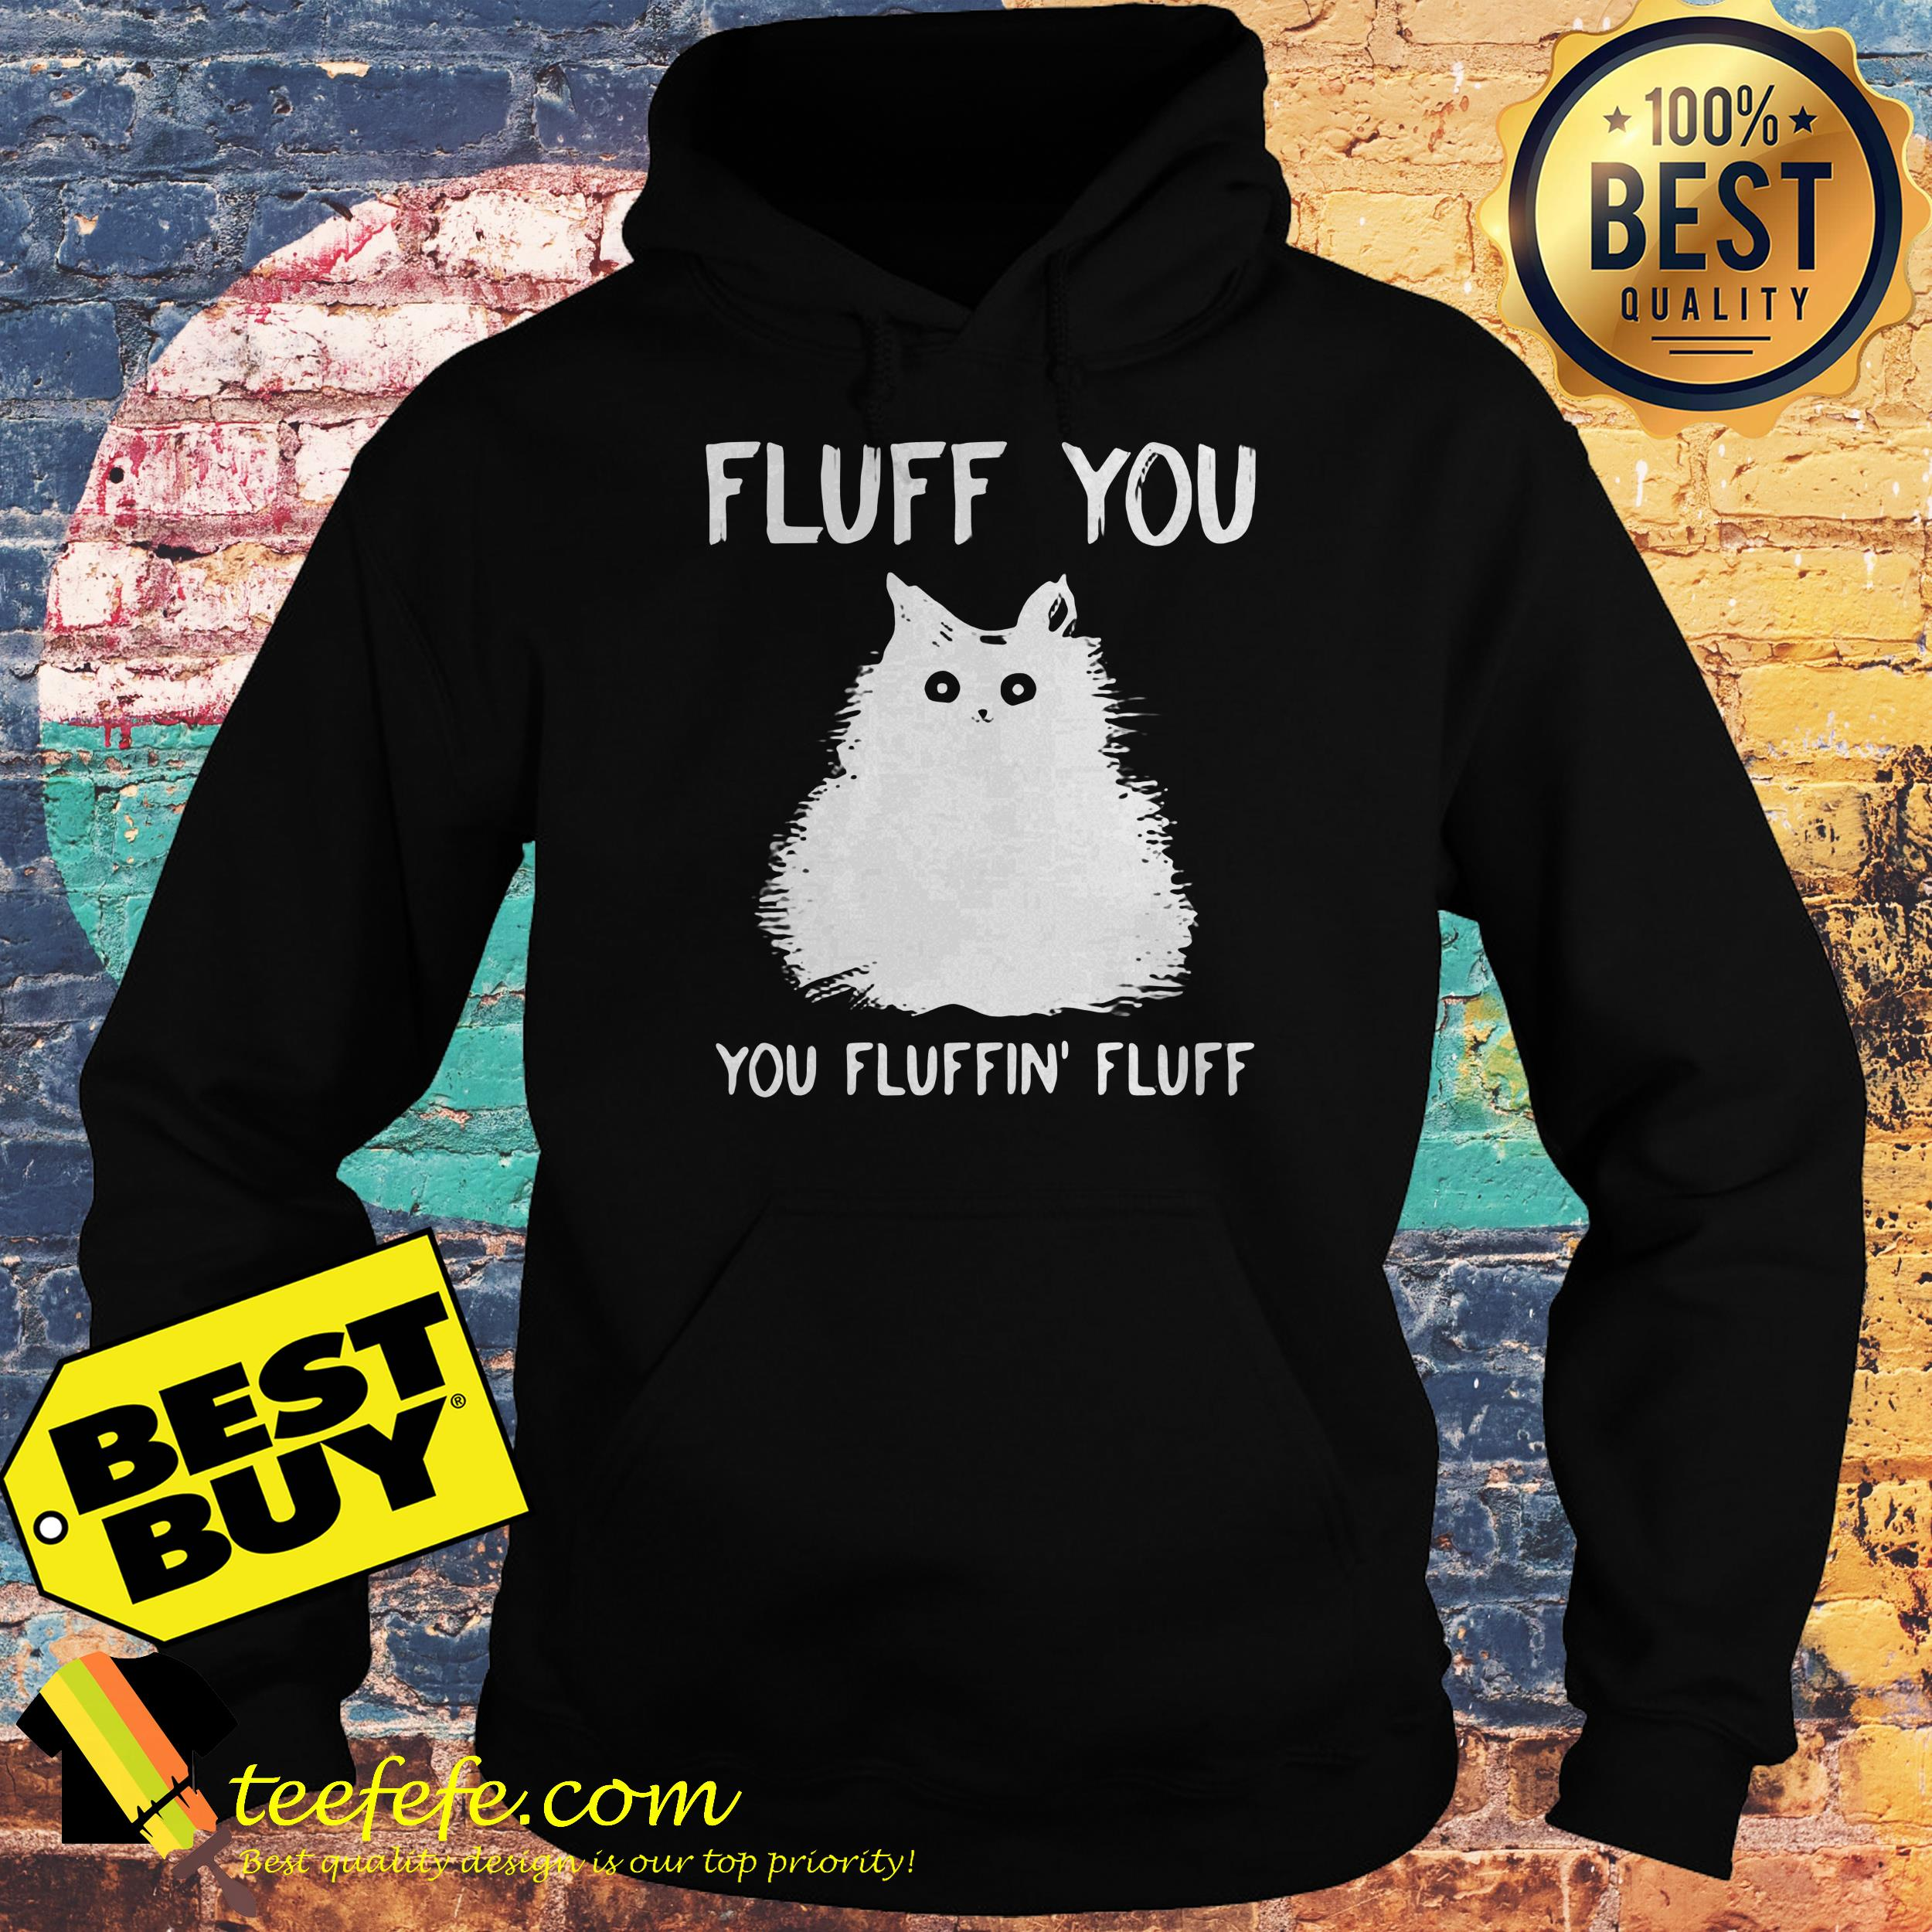 Fluff you you fluffin' fluff funny cat kitten hoodie